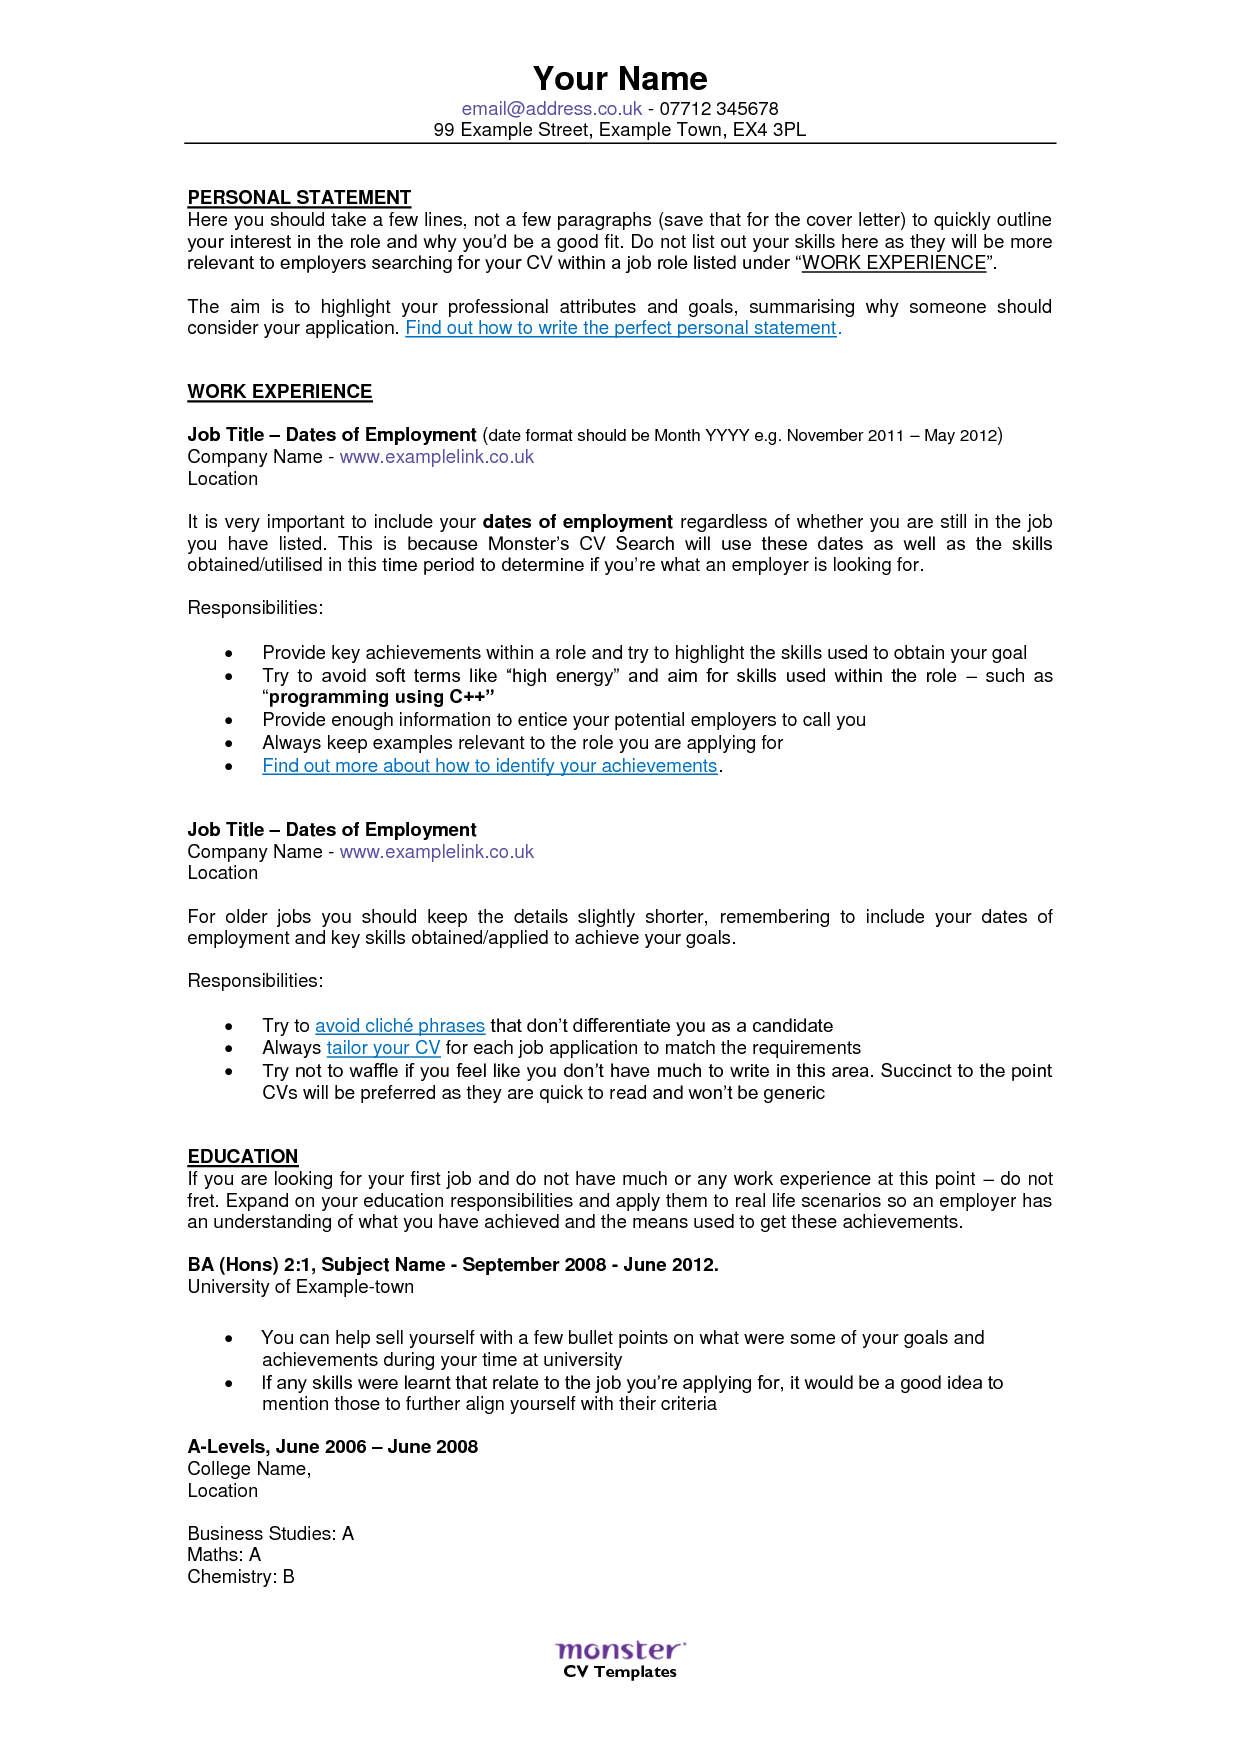 cover letter samples monster template